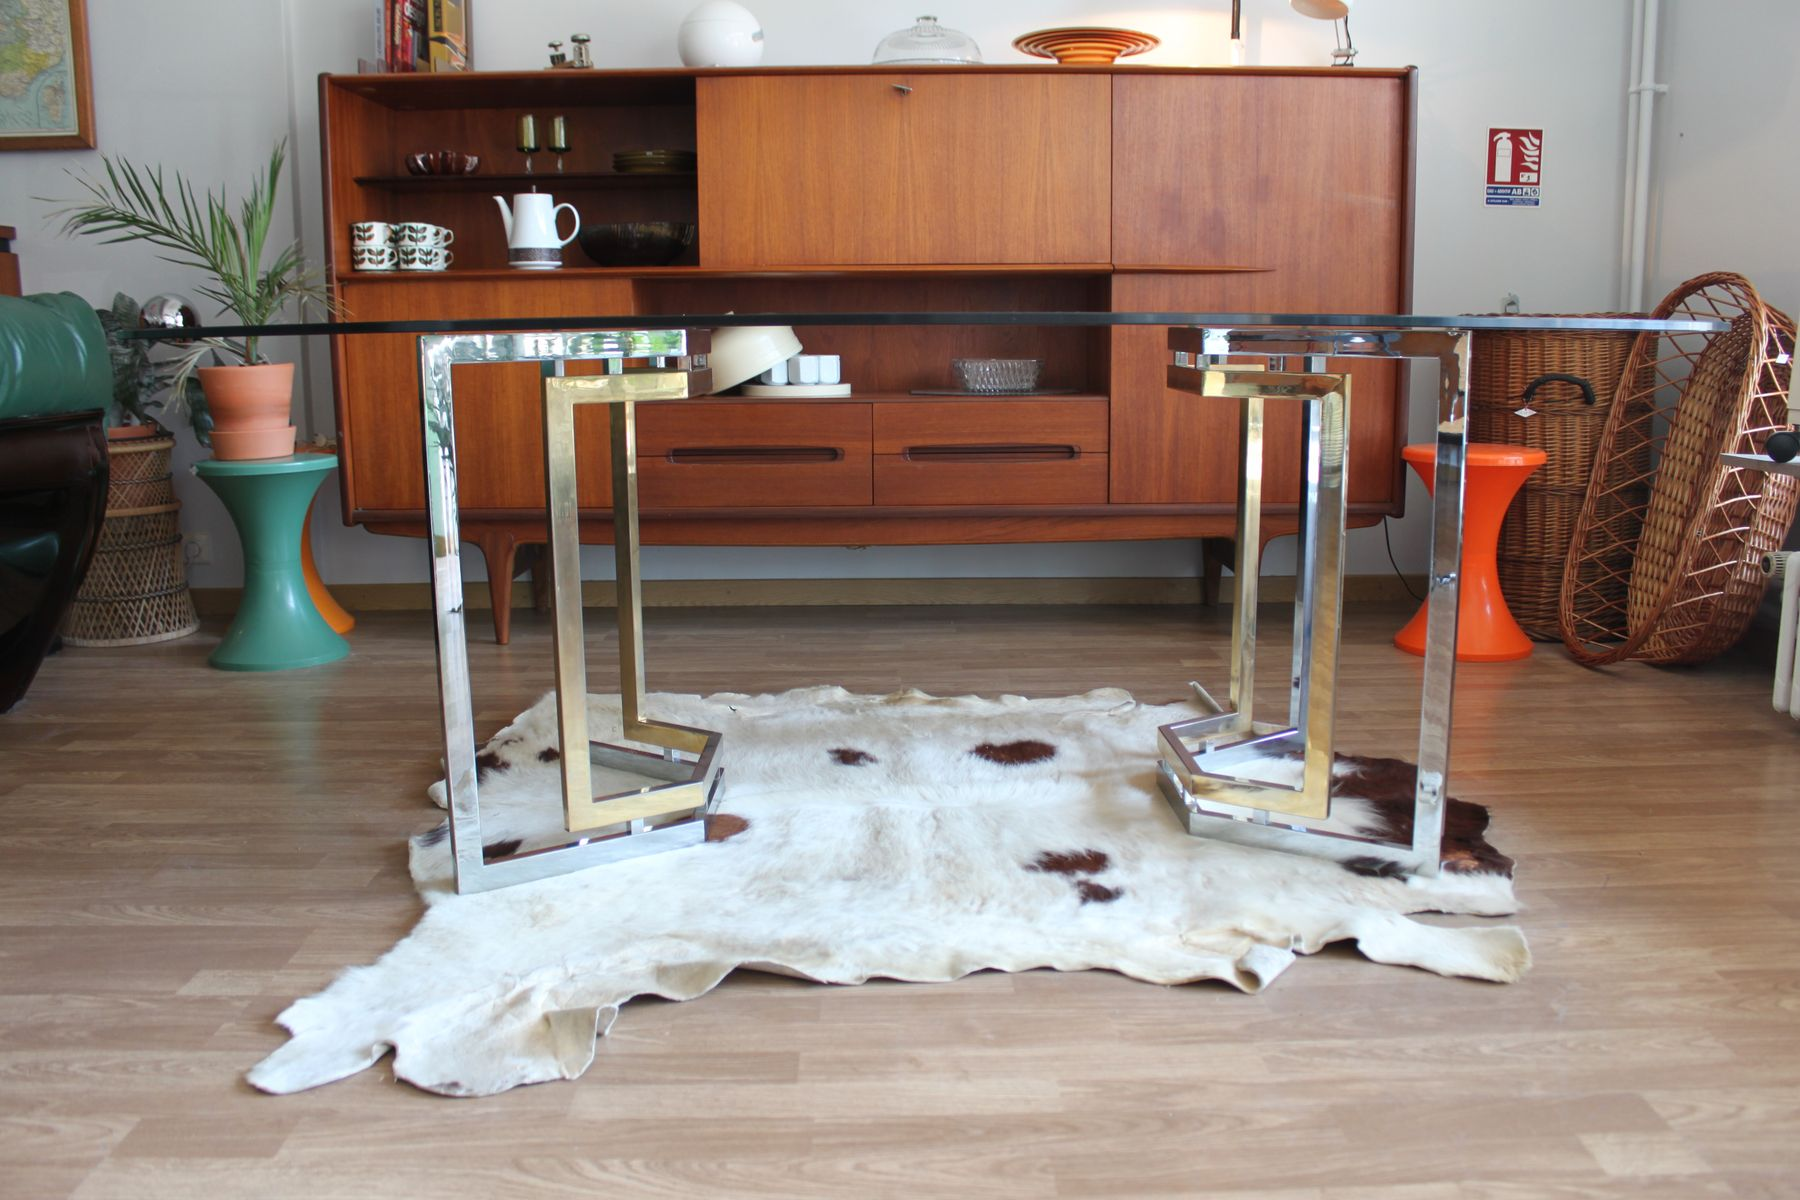 Superb French Smoked Glass, Chrome, And Brass Dining Table From Roche Bobois, 1960s Part 23